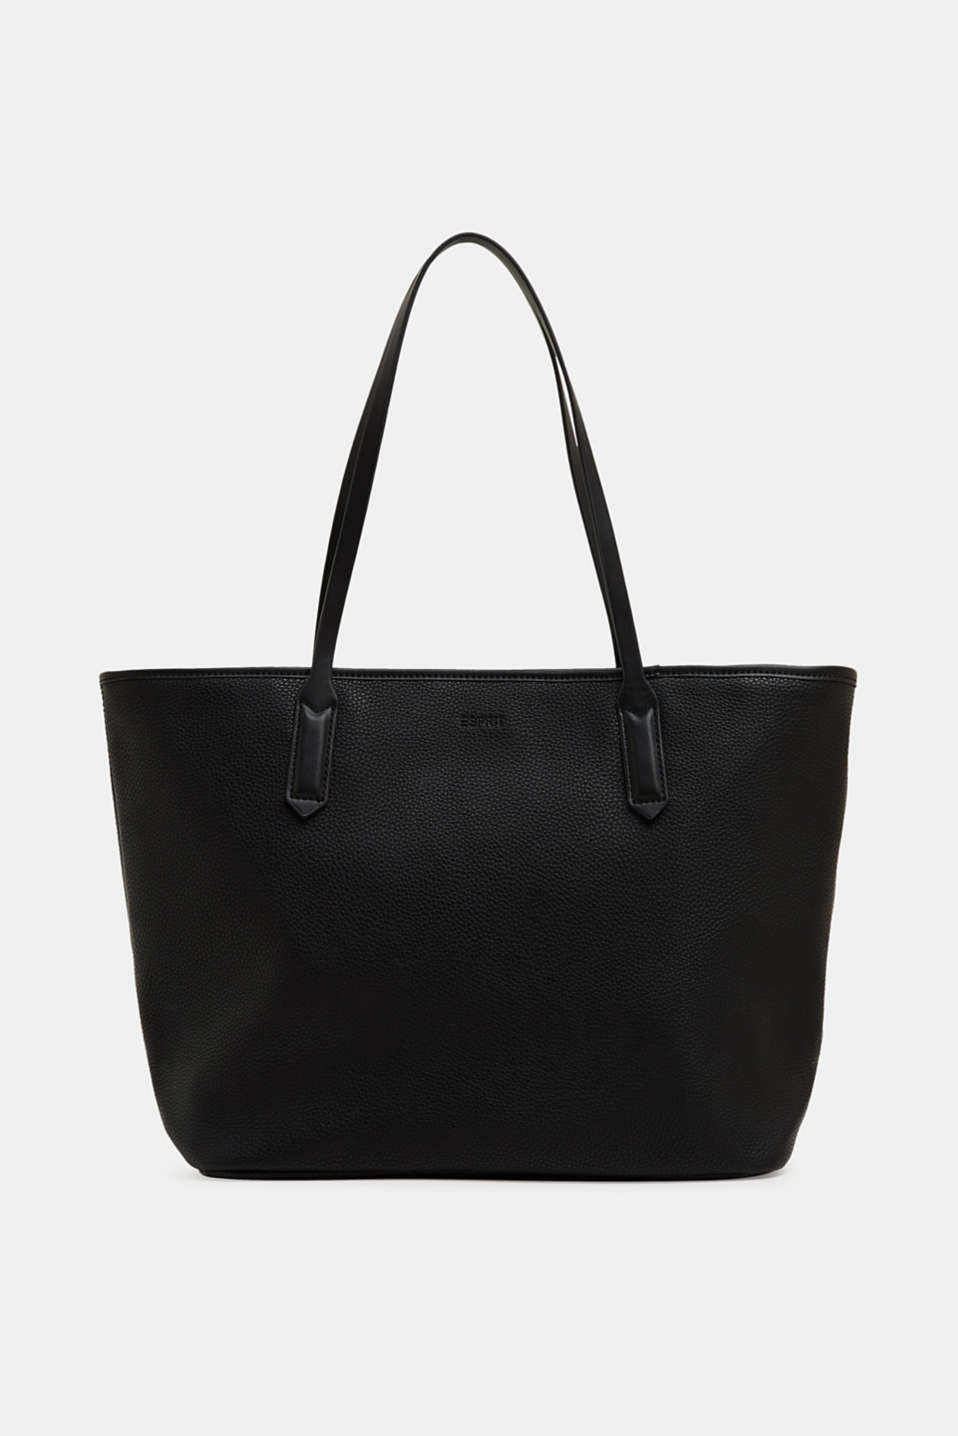 Esprit - Small faux leather shopper